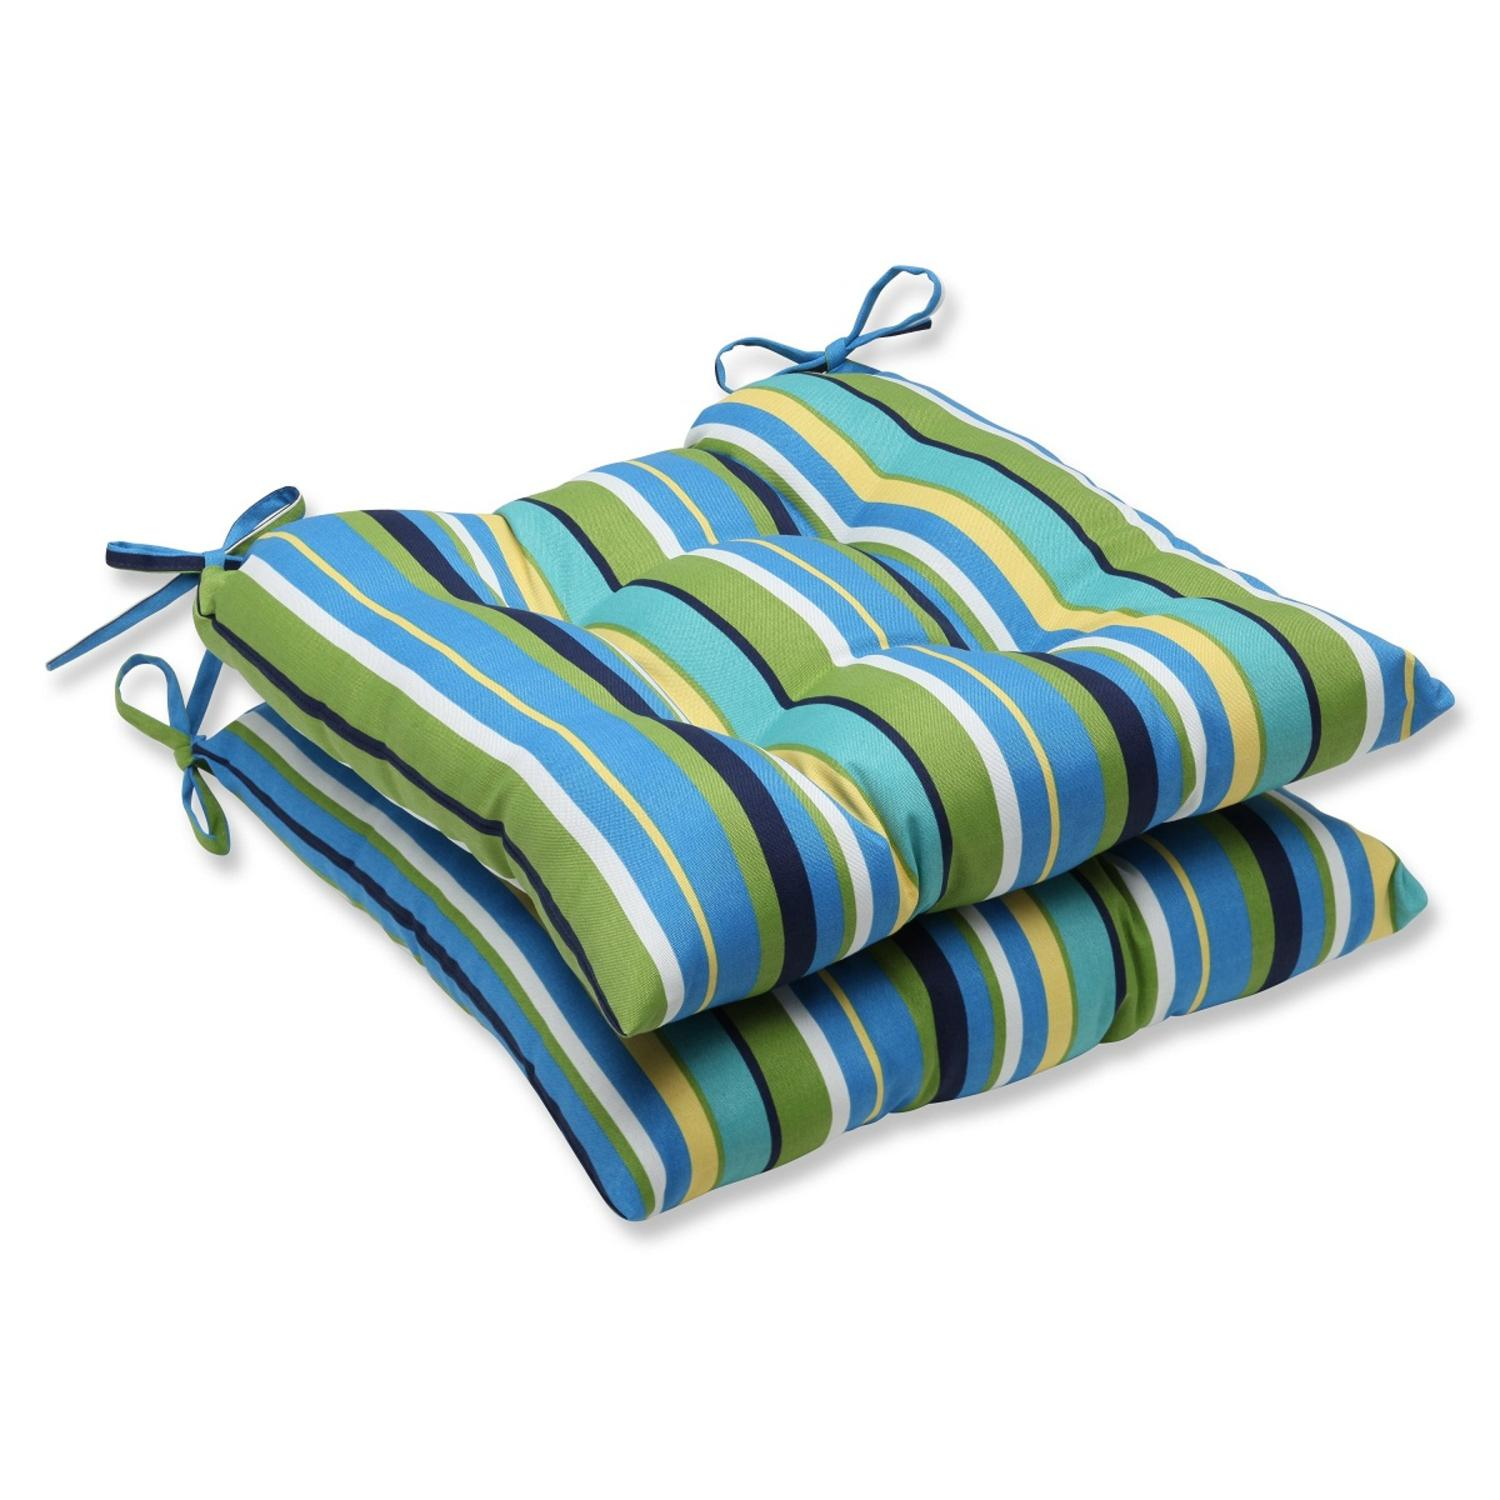 Set of 2 Blue and Green Striped Patio Chair Cushions 19